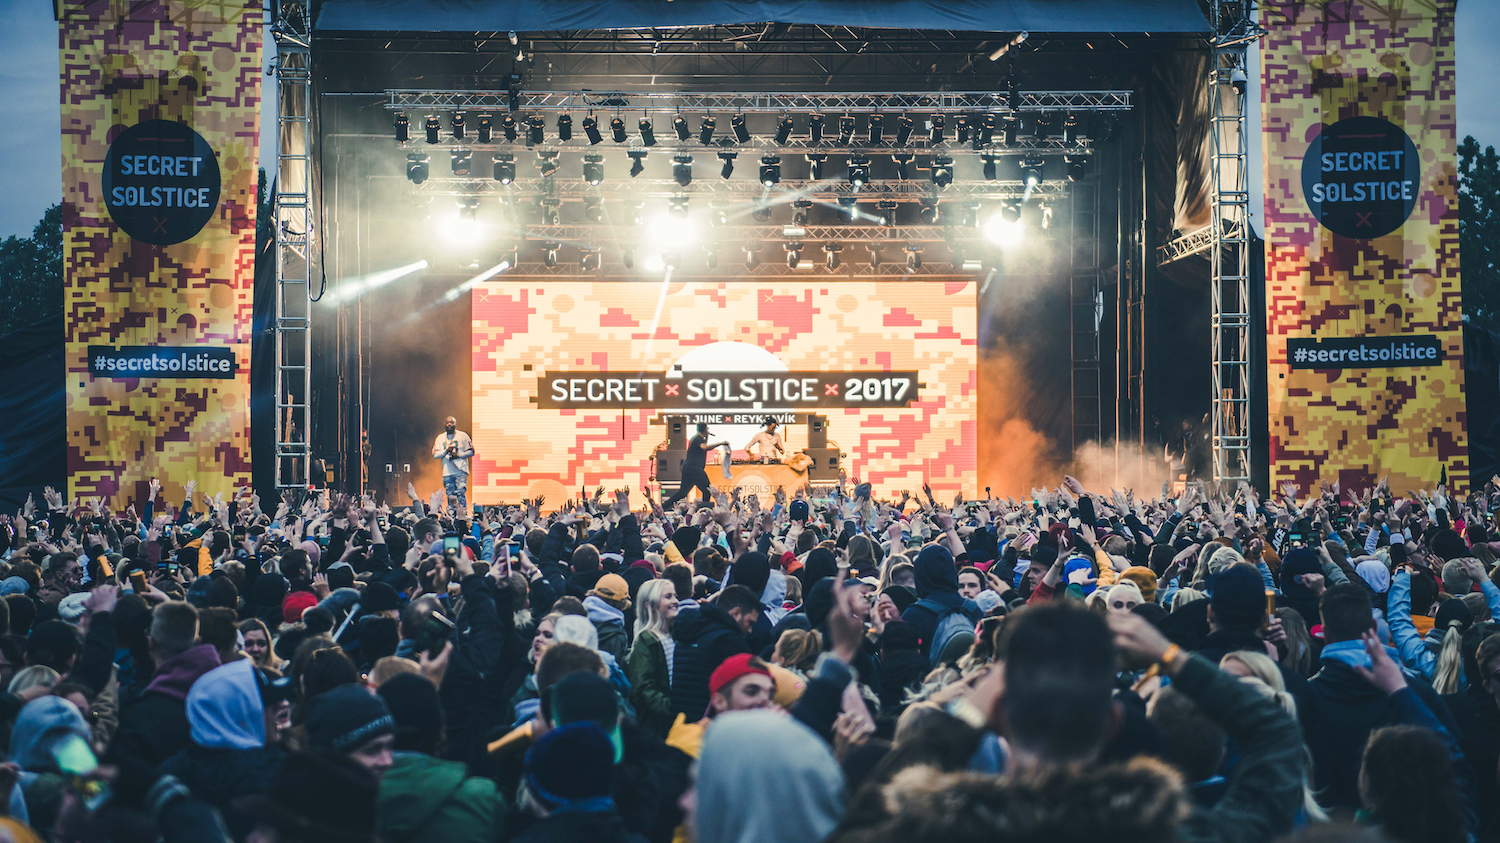 SECRET SOLSTICE 2019 uncovers PHASE 2! Photo Credit to Sarak Koury